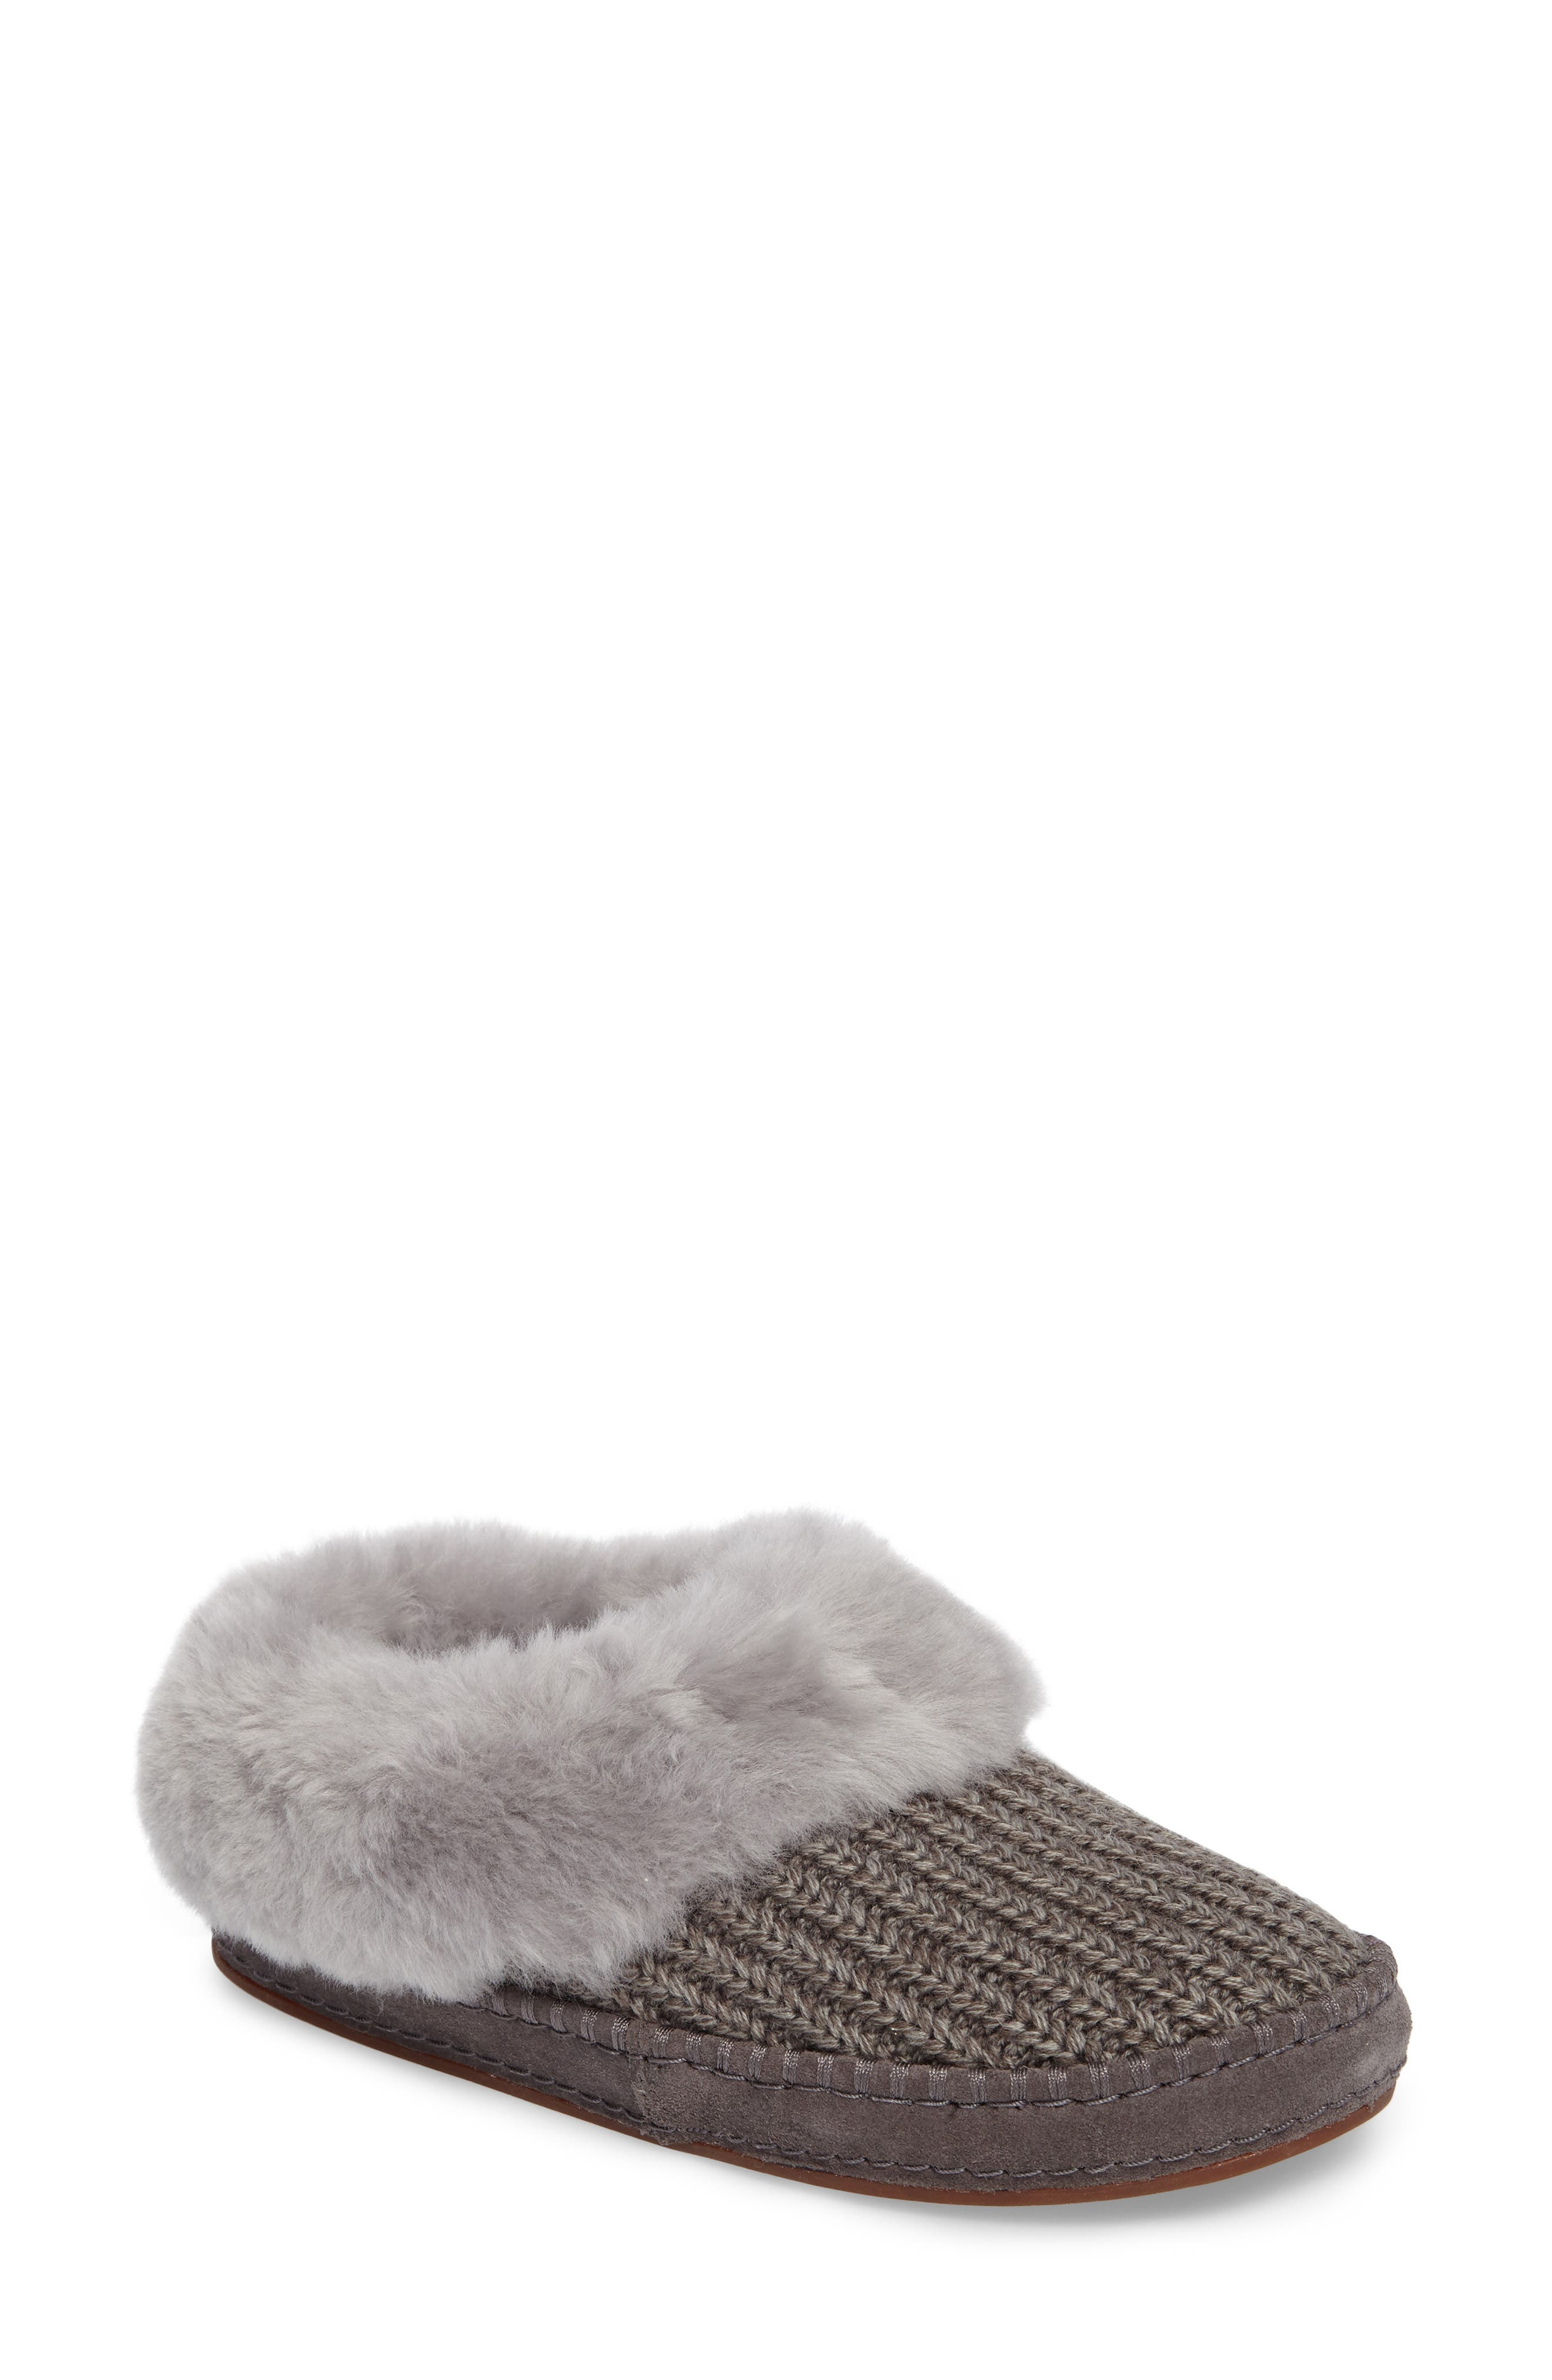 Wrin Rib-Knit & Genuine Shearling Slipper,                             Main thumbnail 1, color,                             020